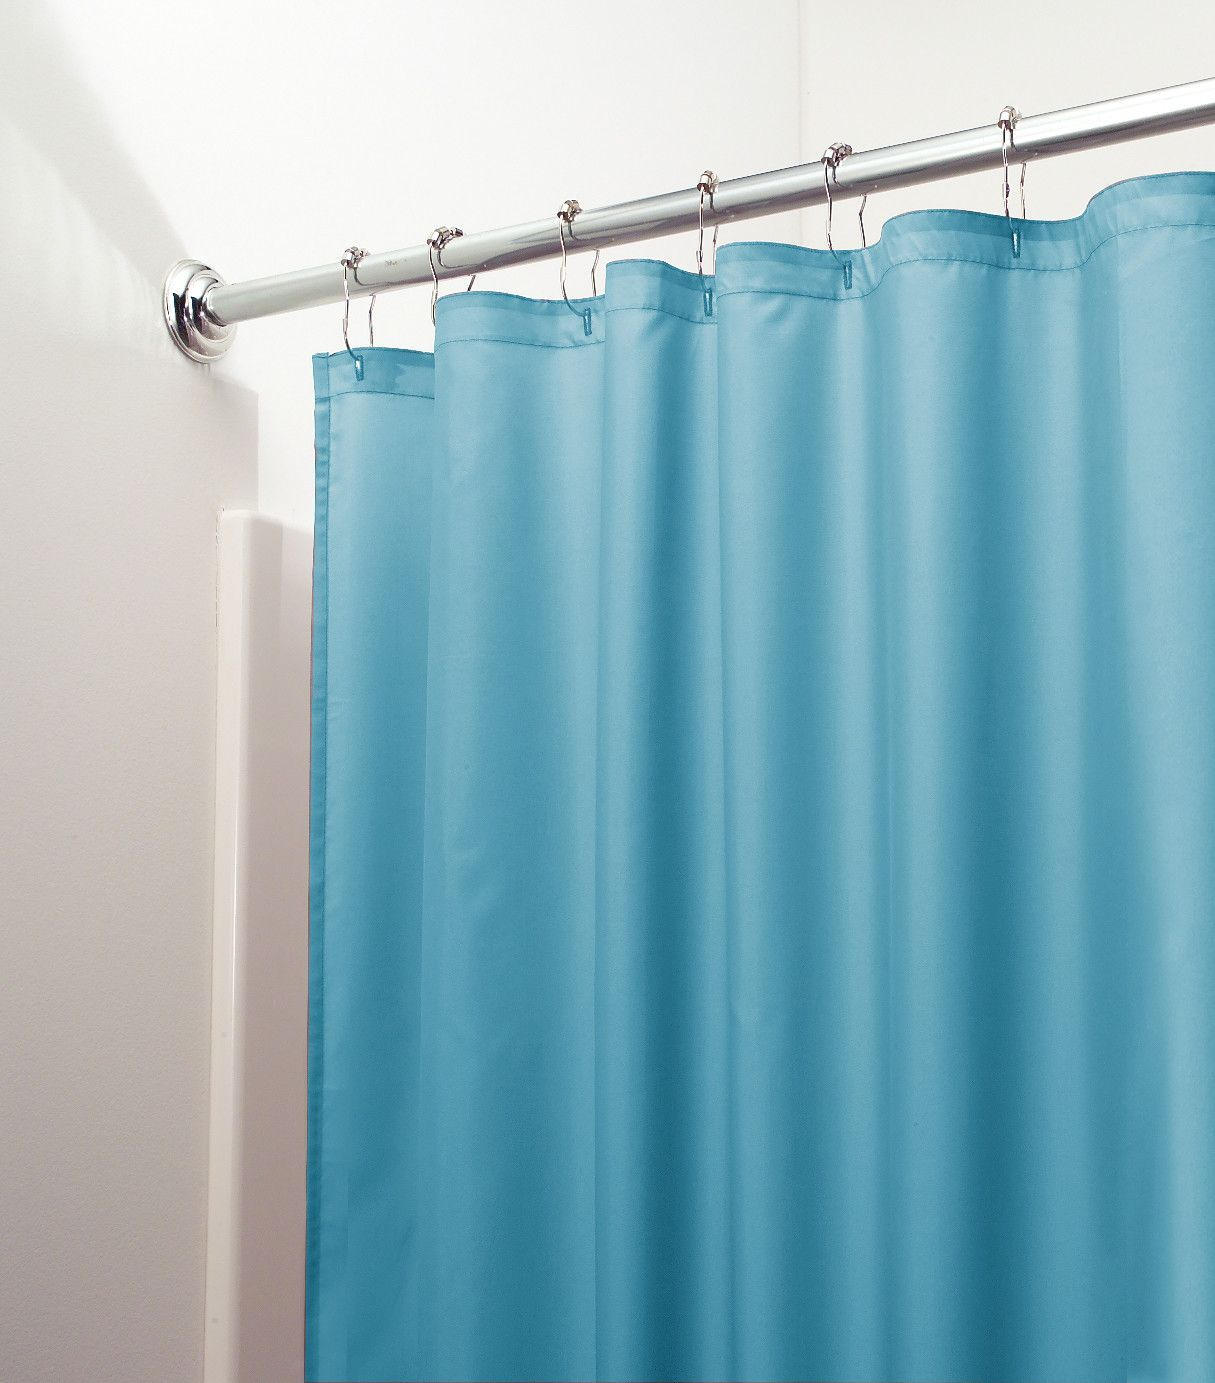 Shower Curtain Liner | Bath products and Bath